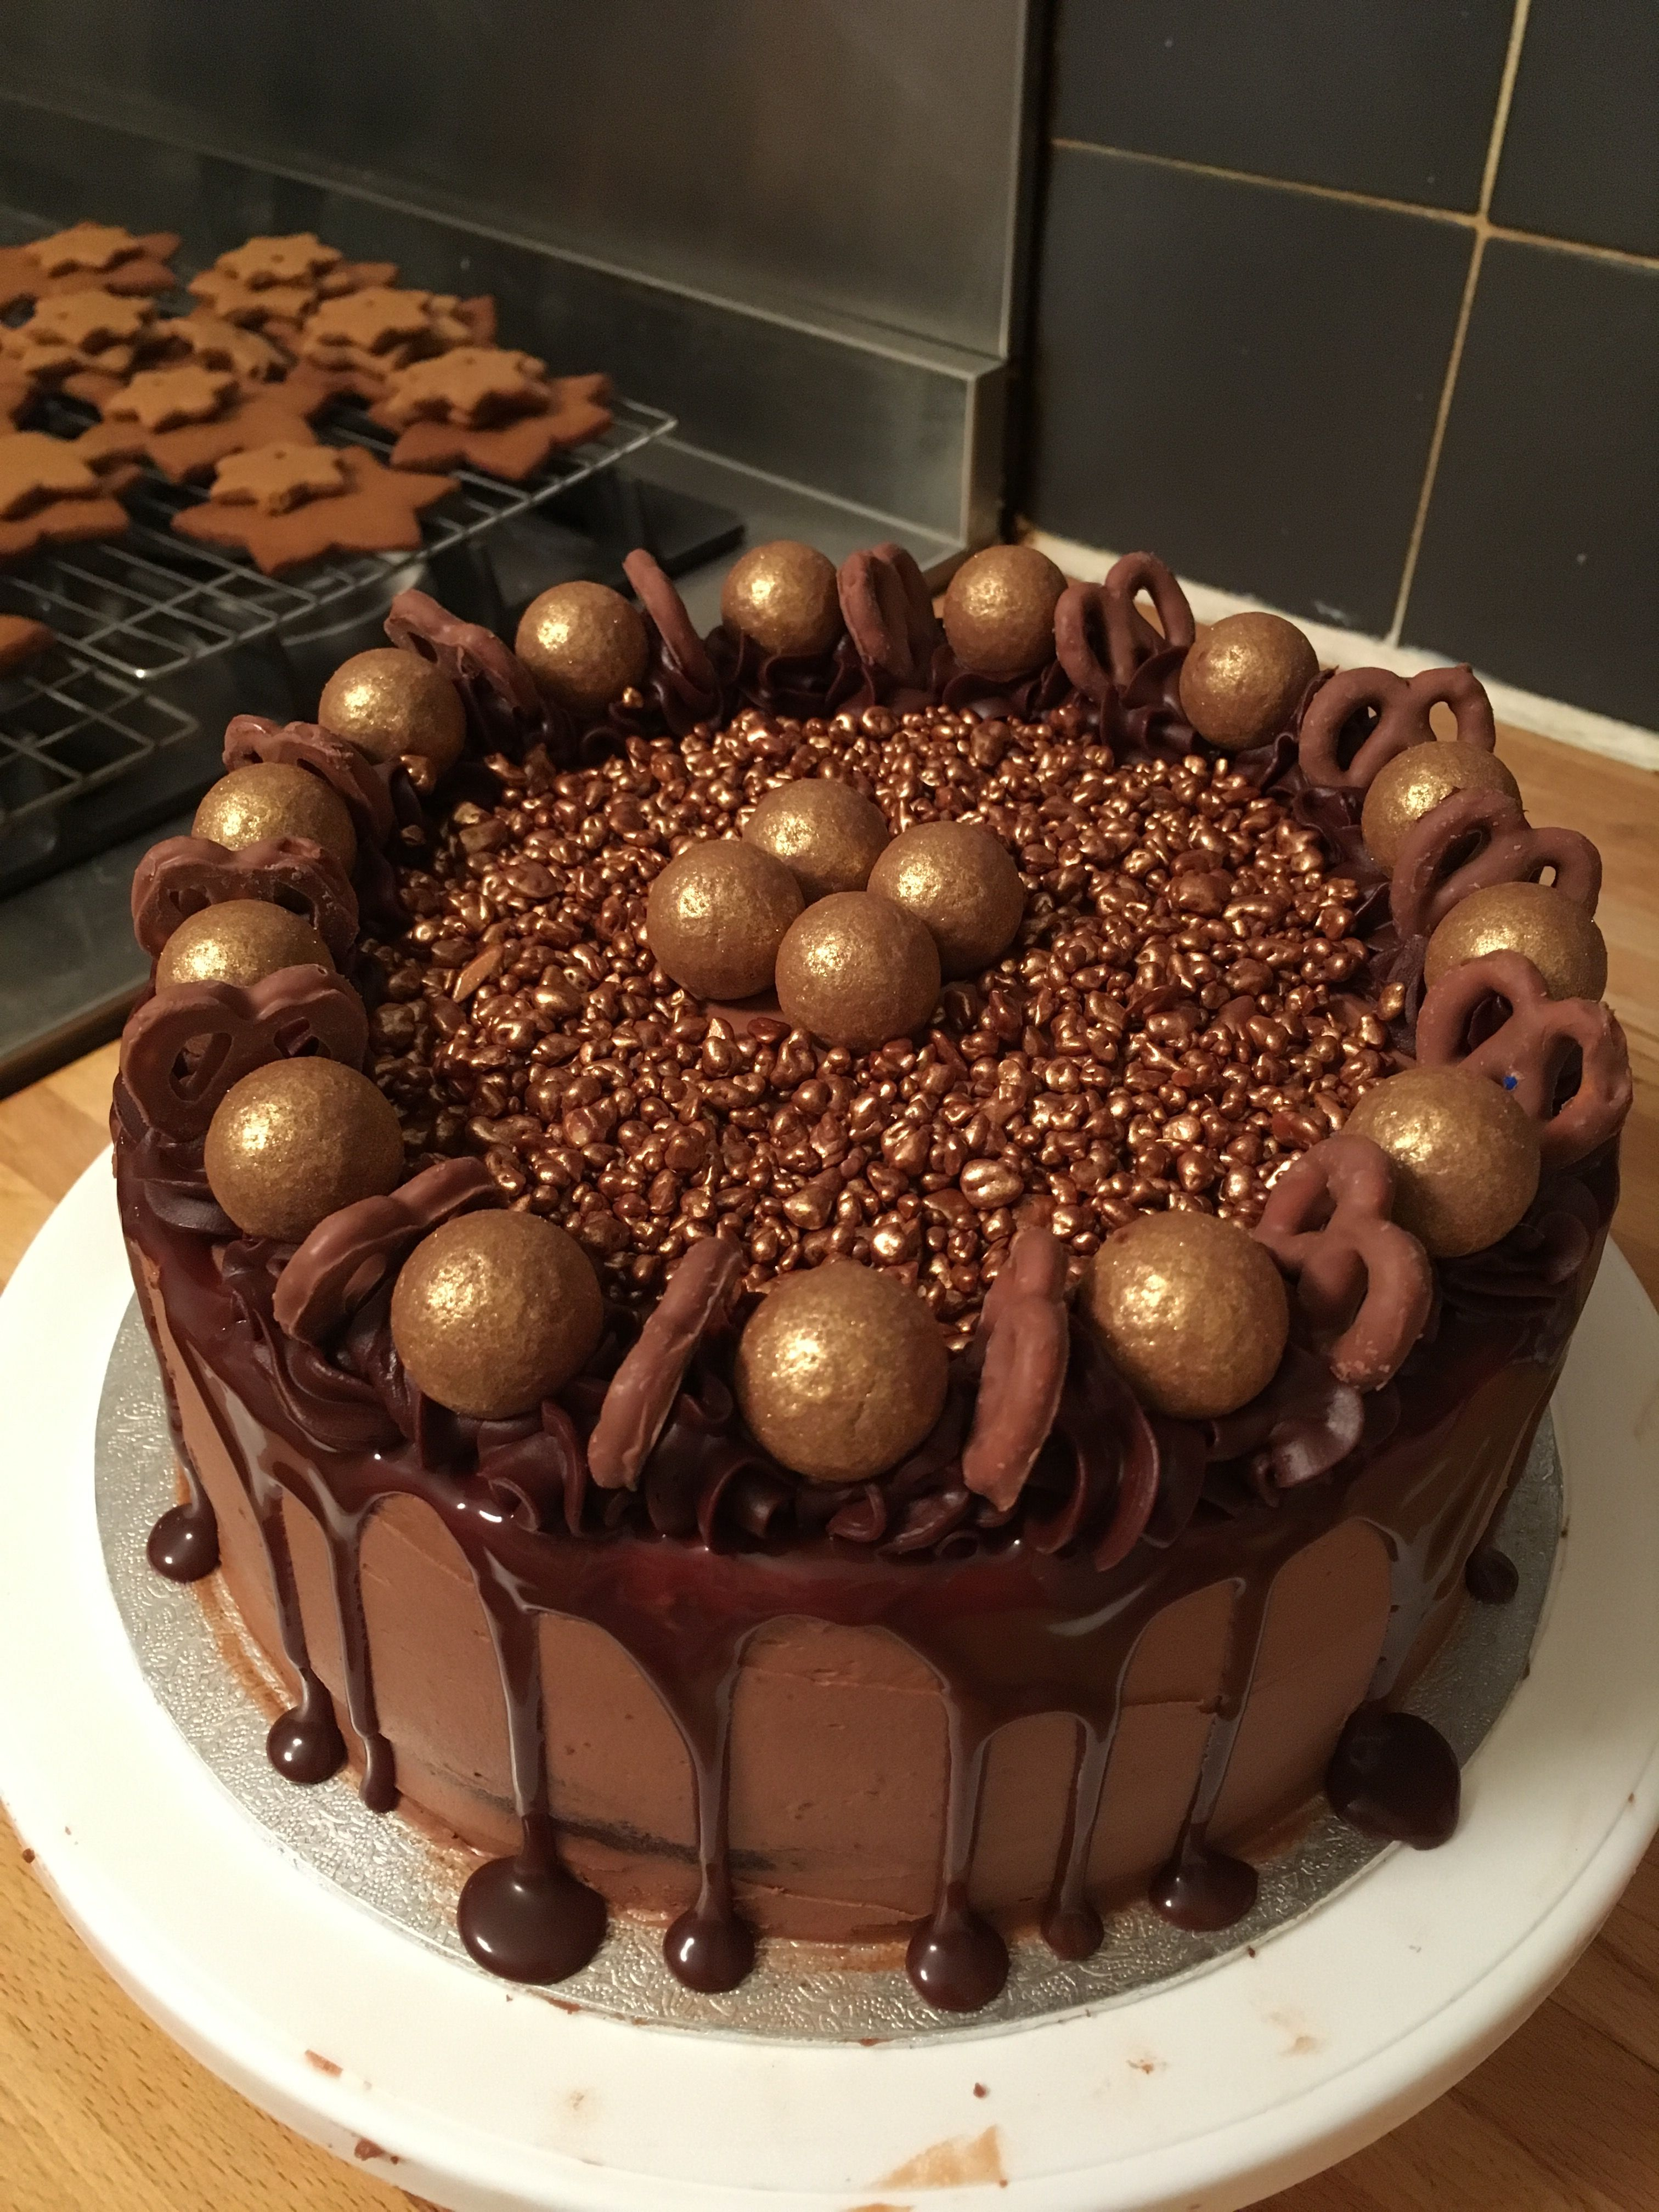 Chocolate Truffle Cake With Buttercream Sauce Honeycomb Covered Pretzels And Caramel Filled Truffles